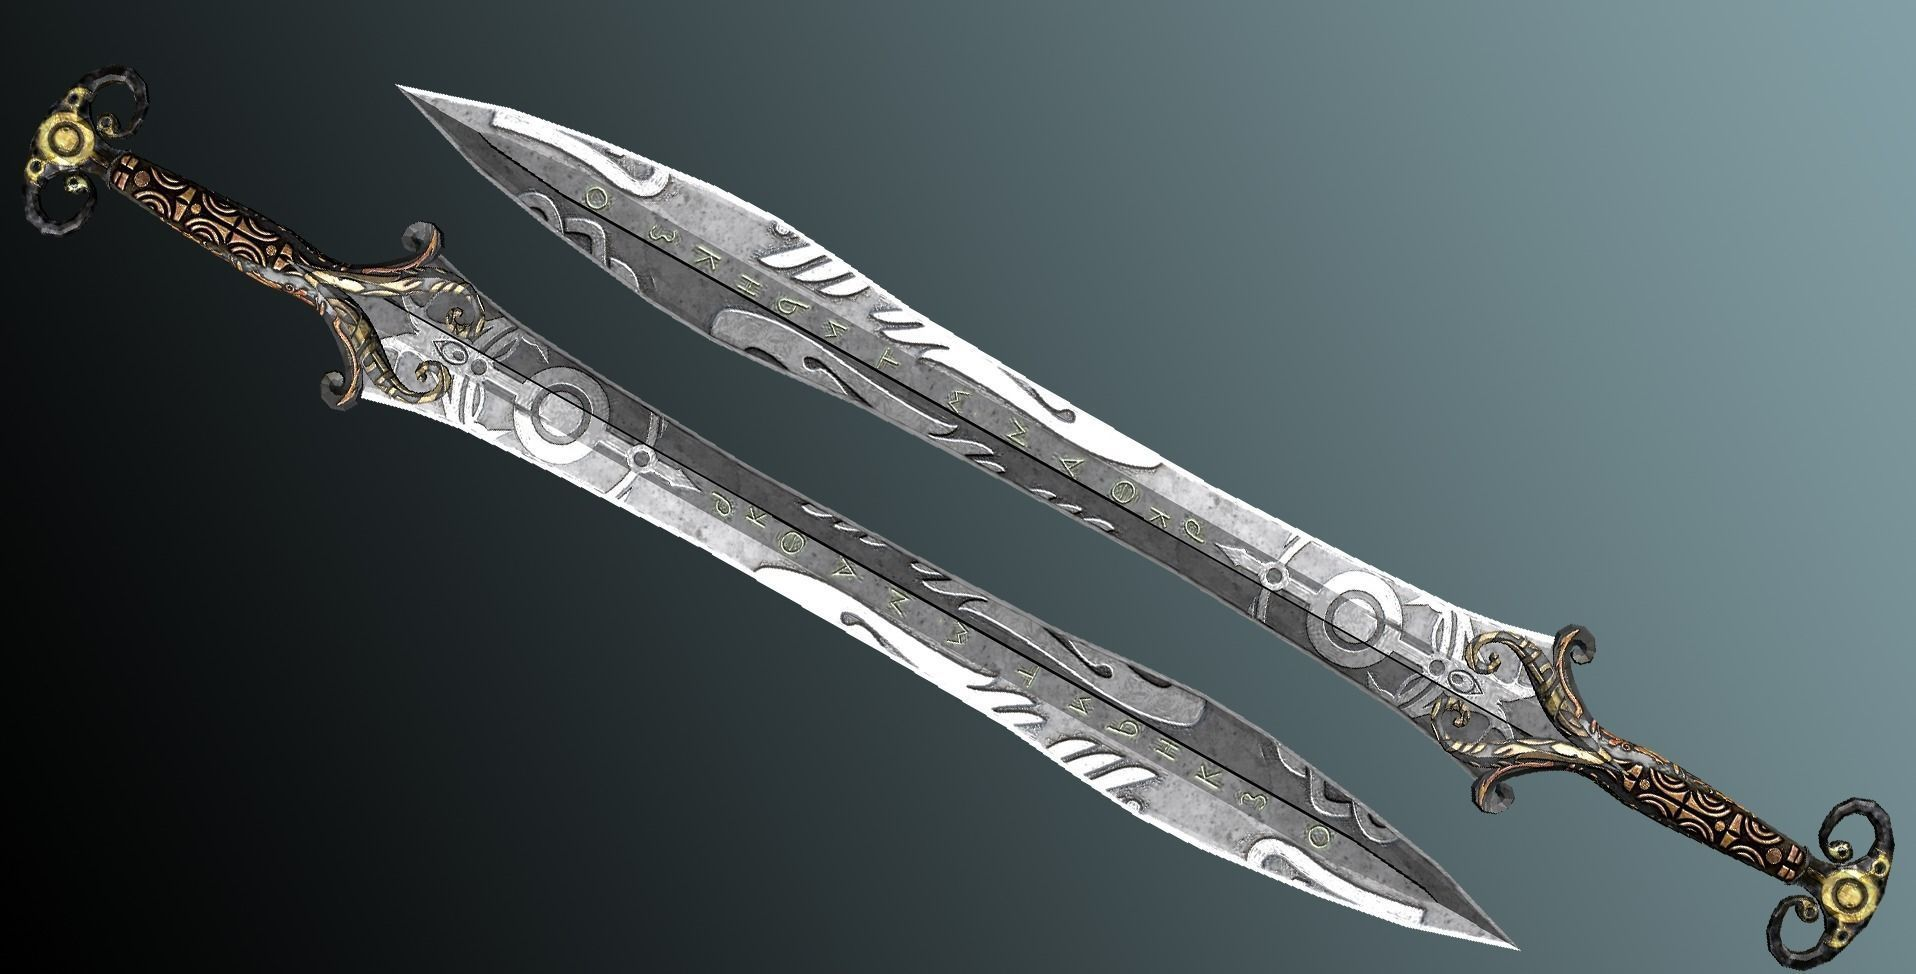 3D model Fantasy Sword VR / AR / low-poly FBX | CGTrader.com